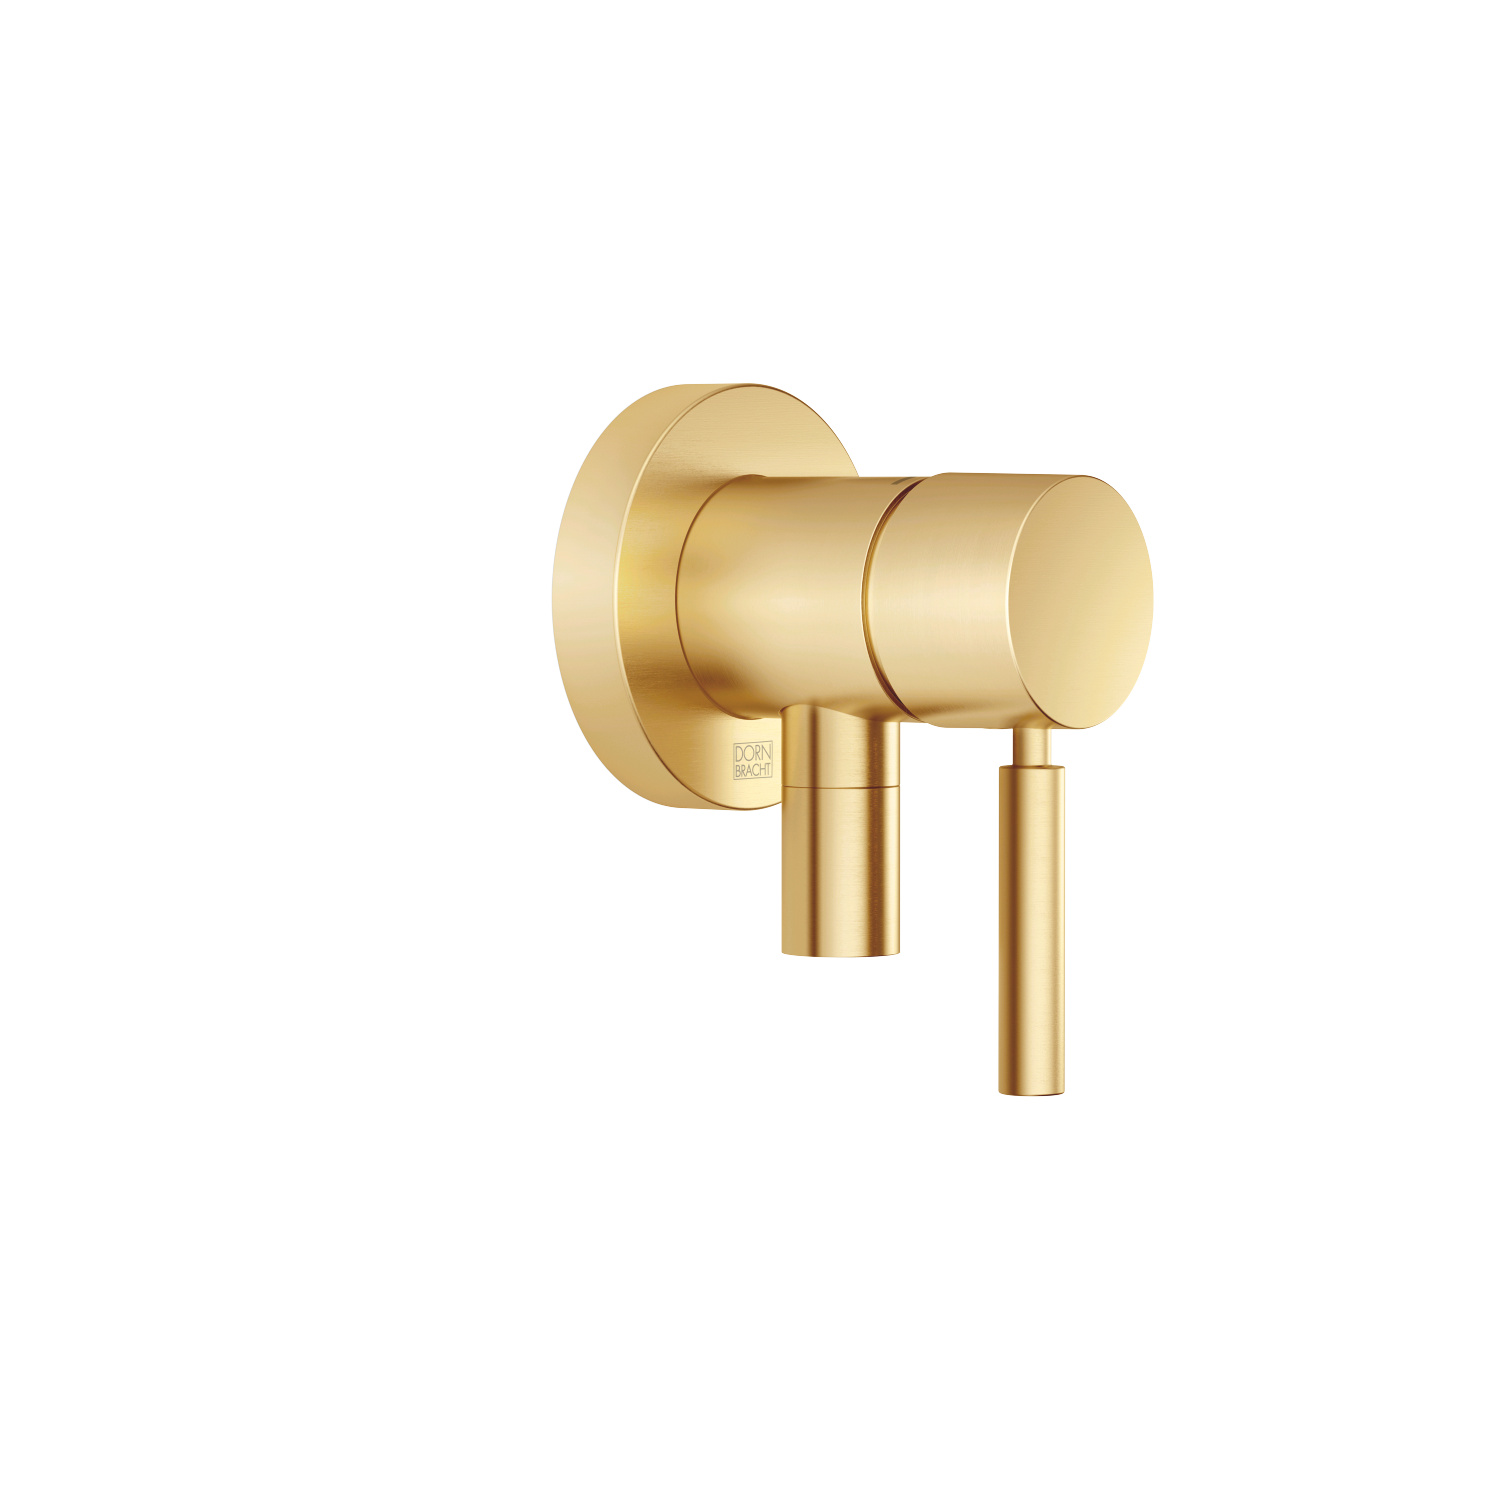 Concealed single-lever mixer with cover plate with integrated shower connection - brushed Durabrass